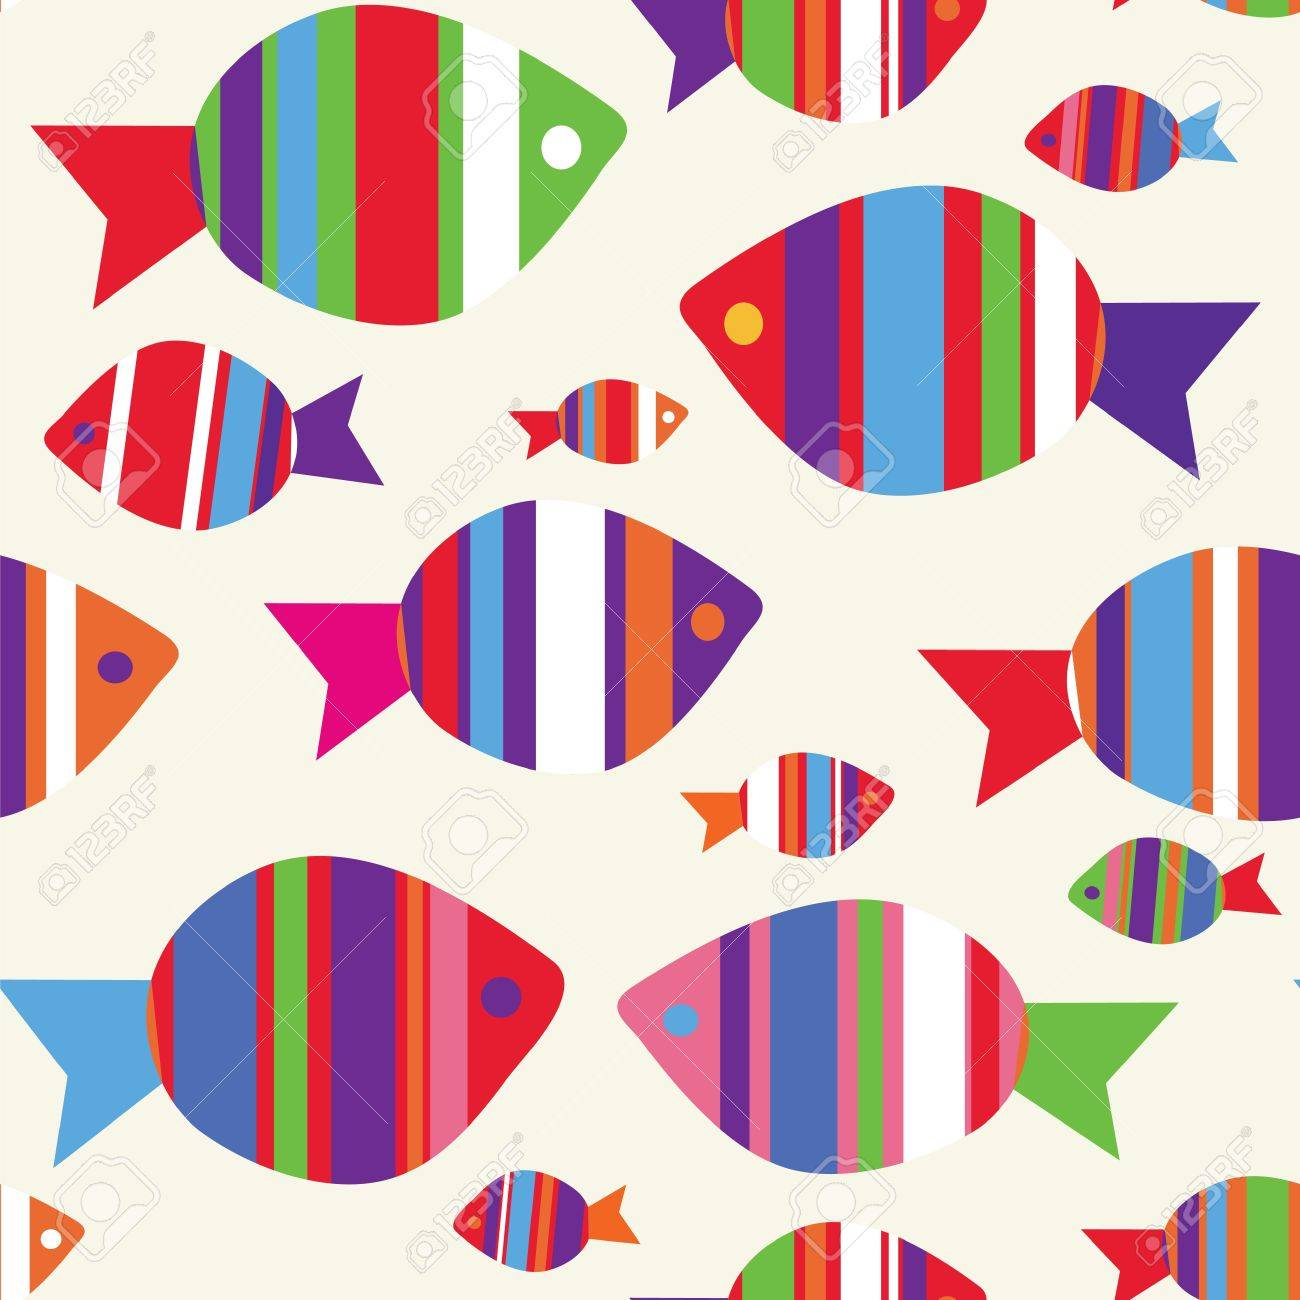 Fishes seamless funny pattern for kids - 14098965